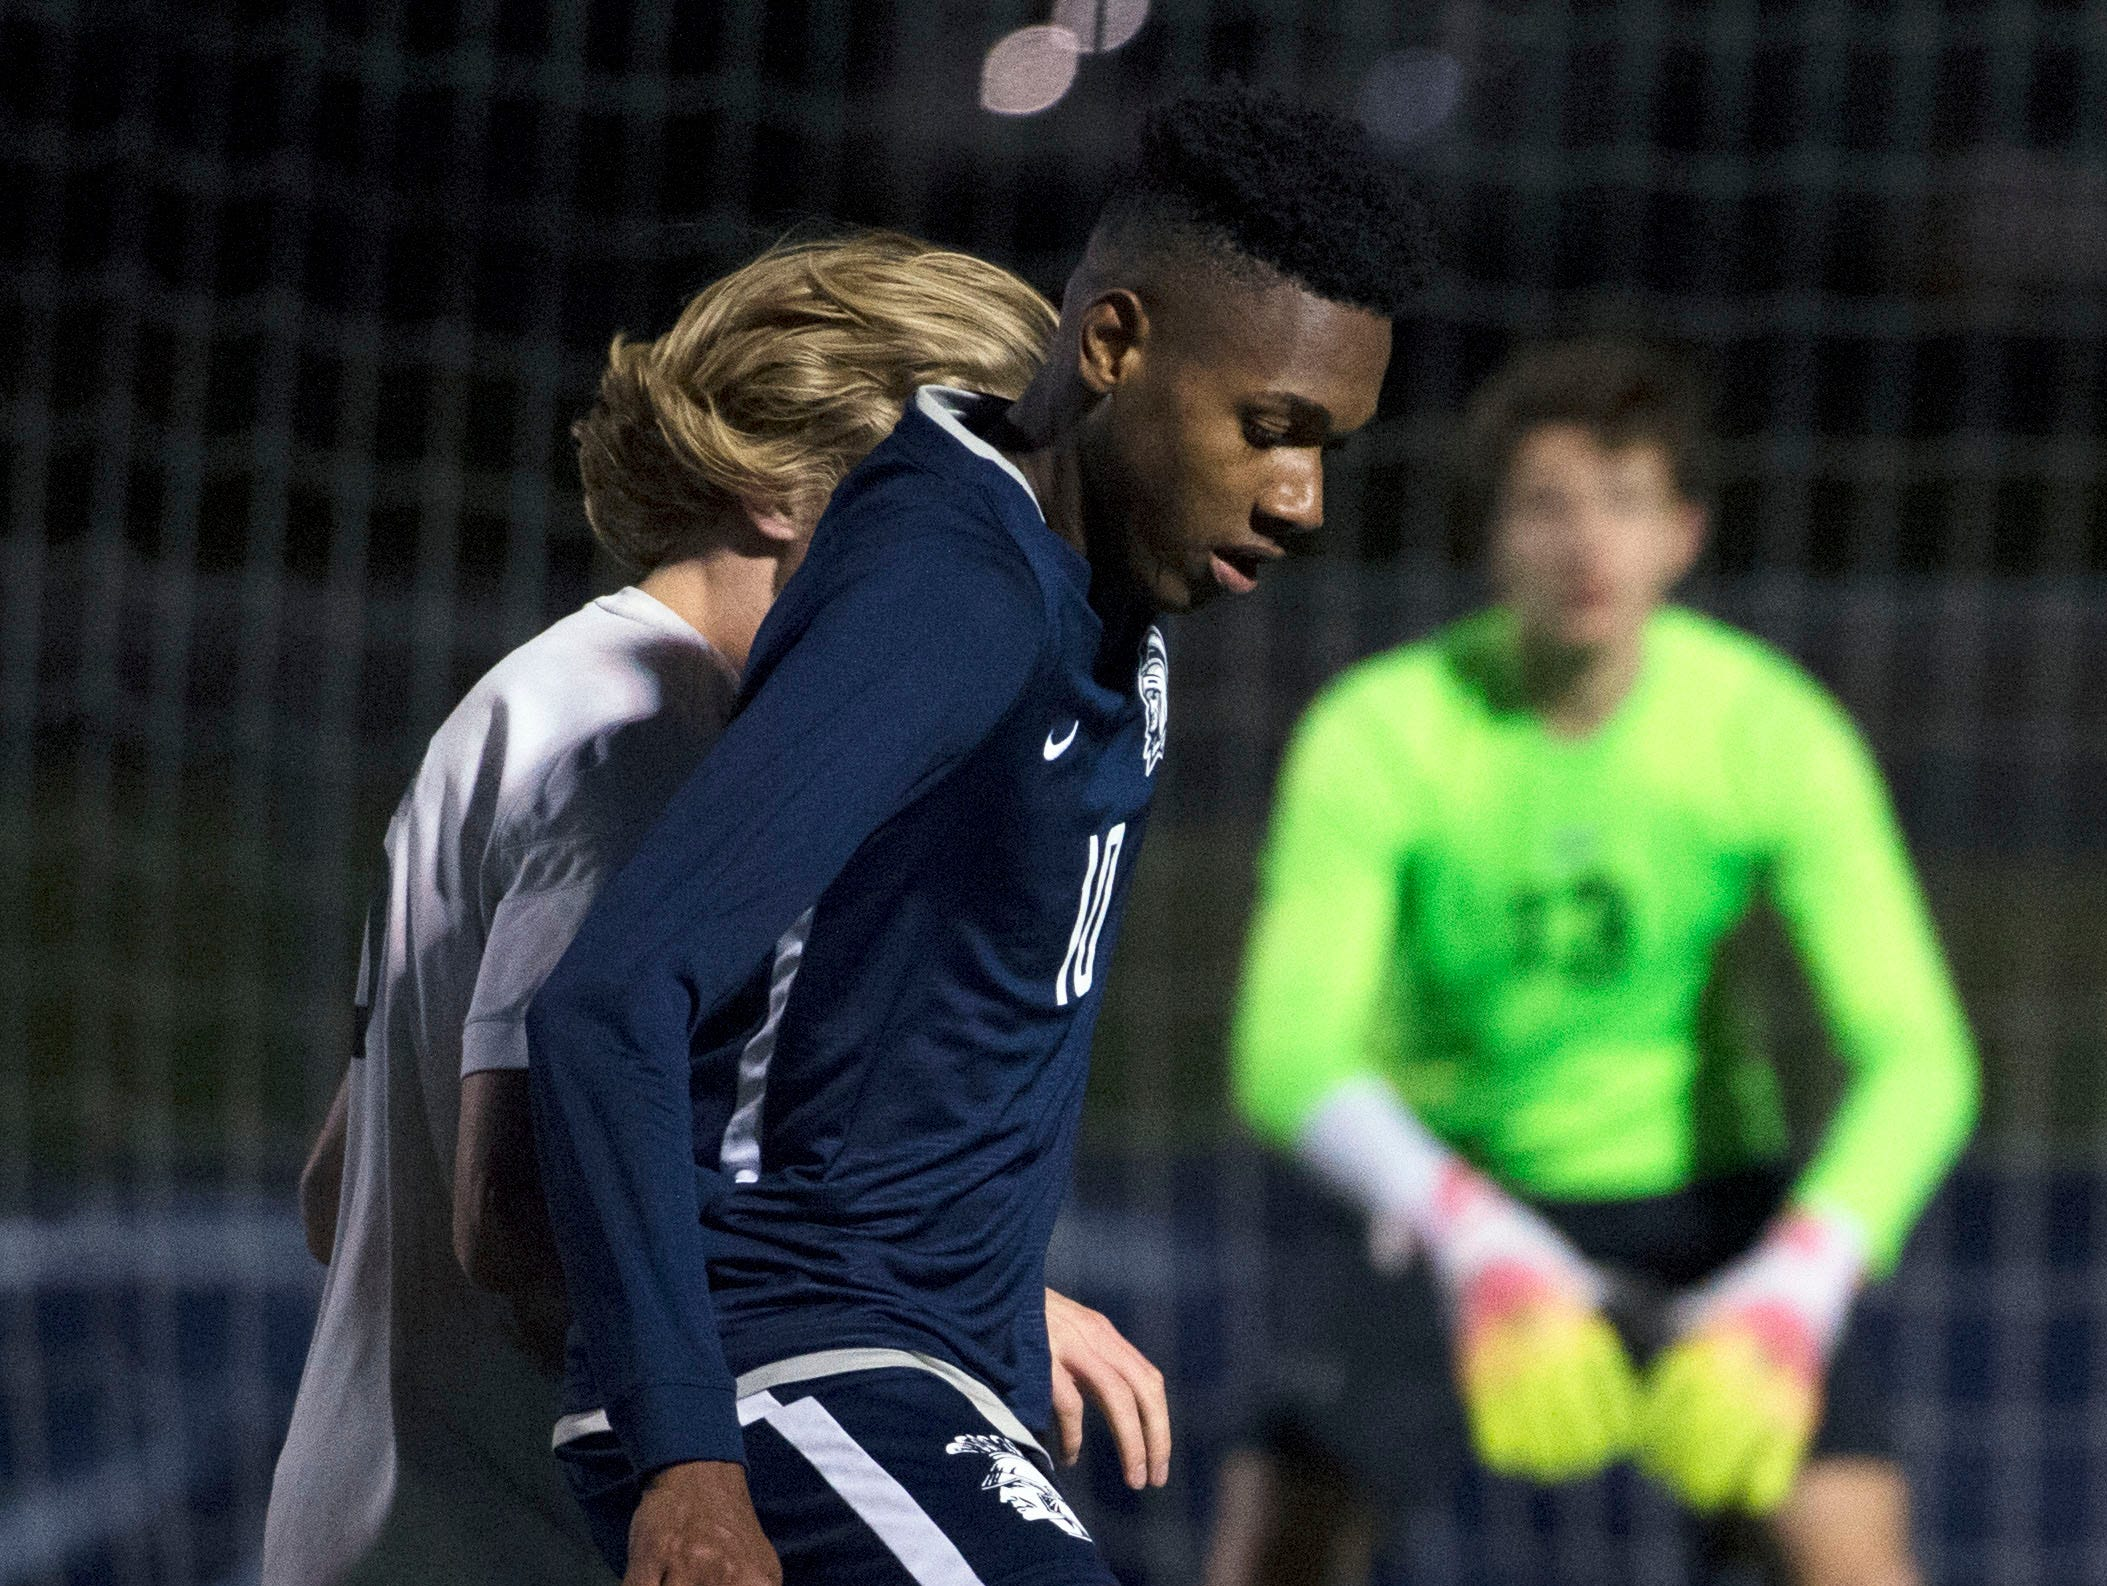 Chambersburg's Omario Duncan dribles the ball. Chambersburg lost a first round D3 soccer match to Dallastown 2-1 on Tuesday, Oct. 23, 2018.